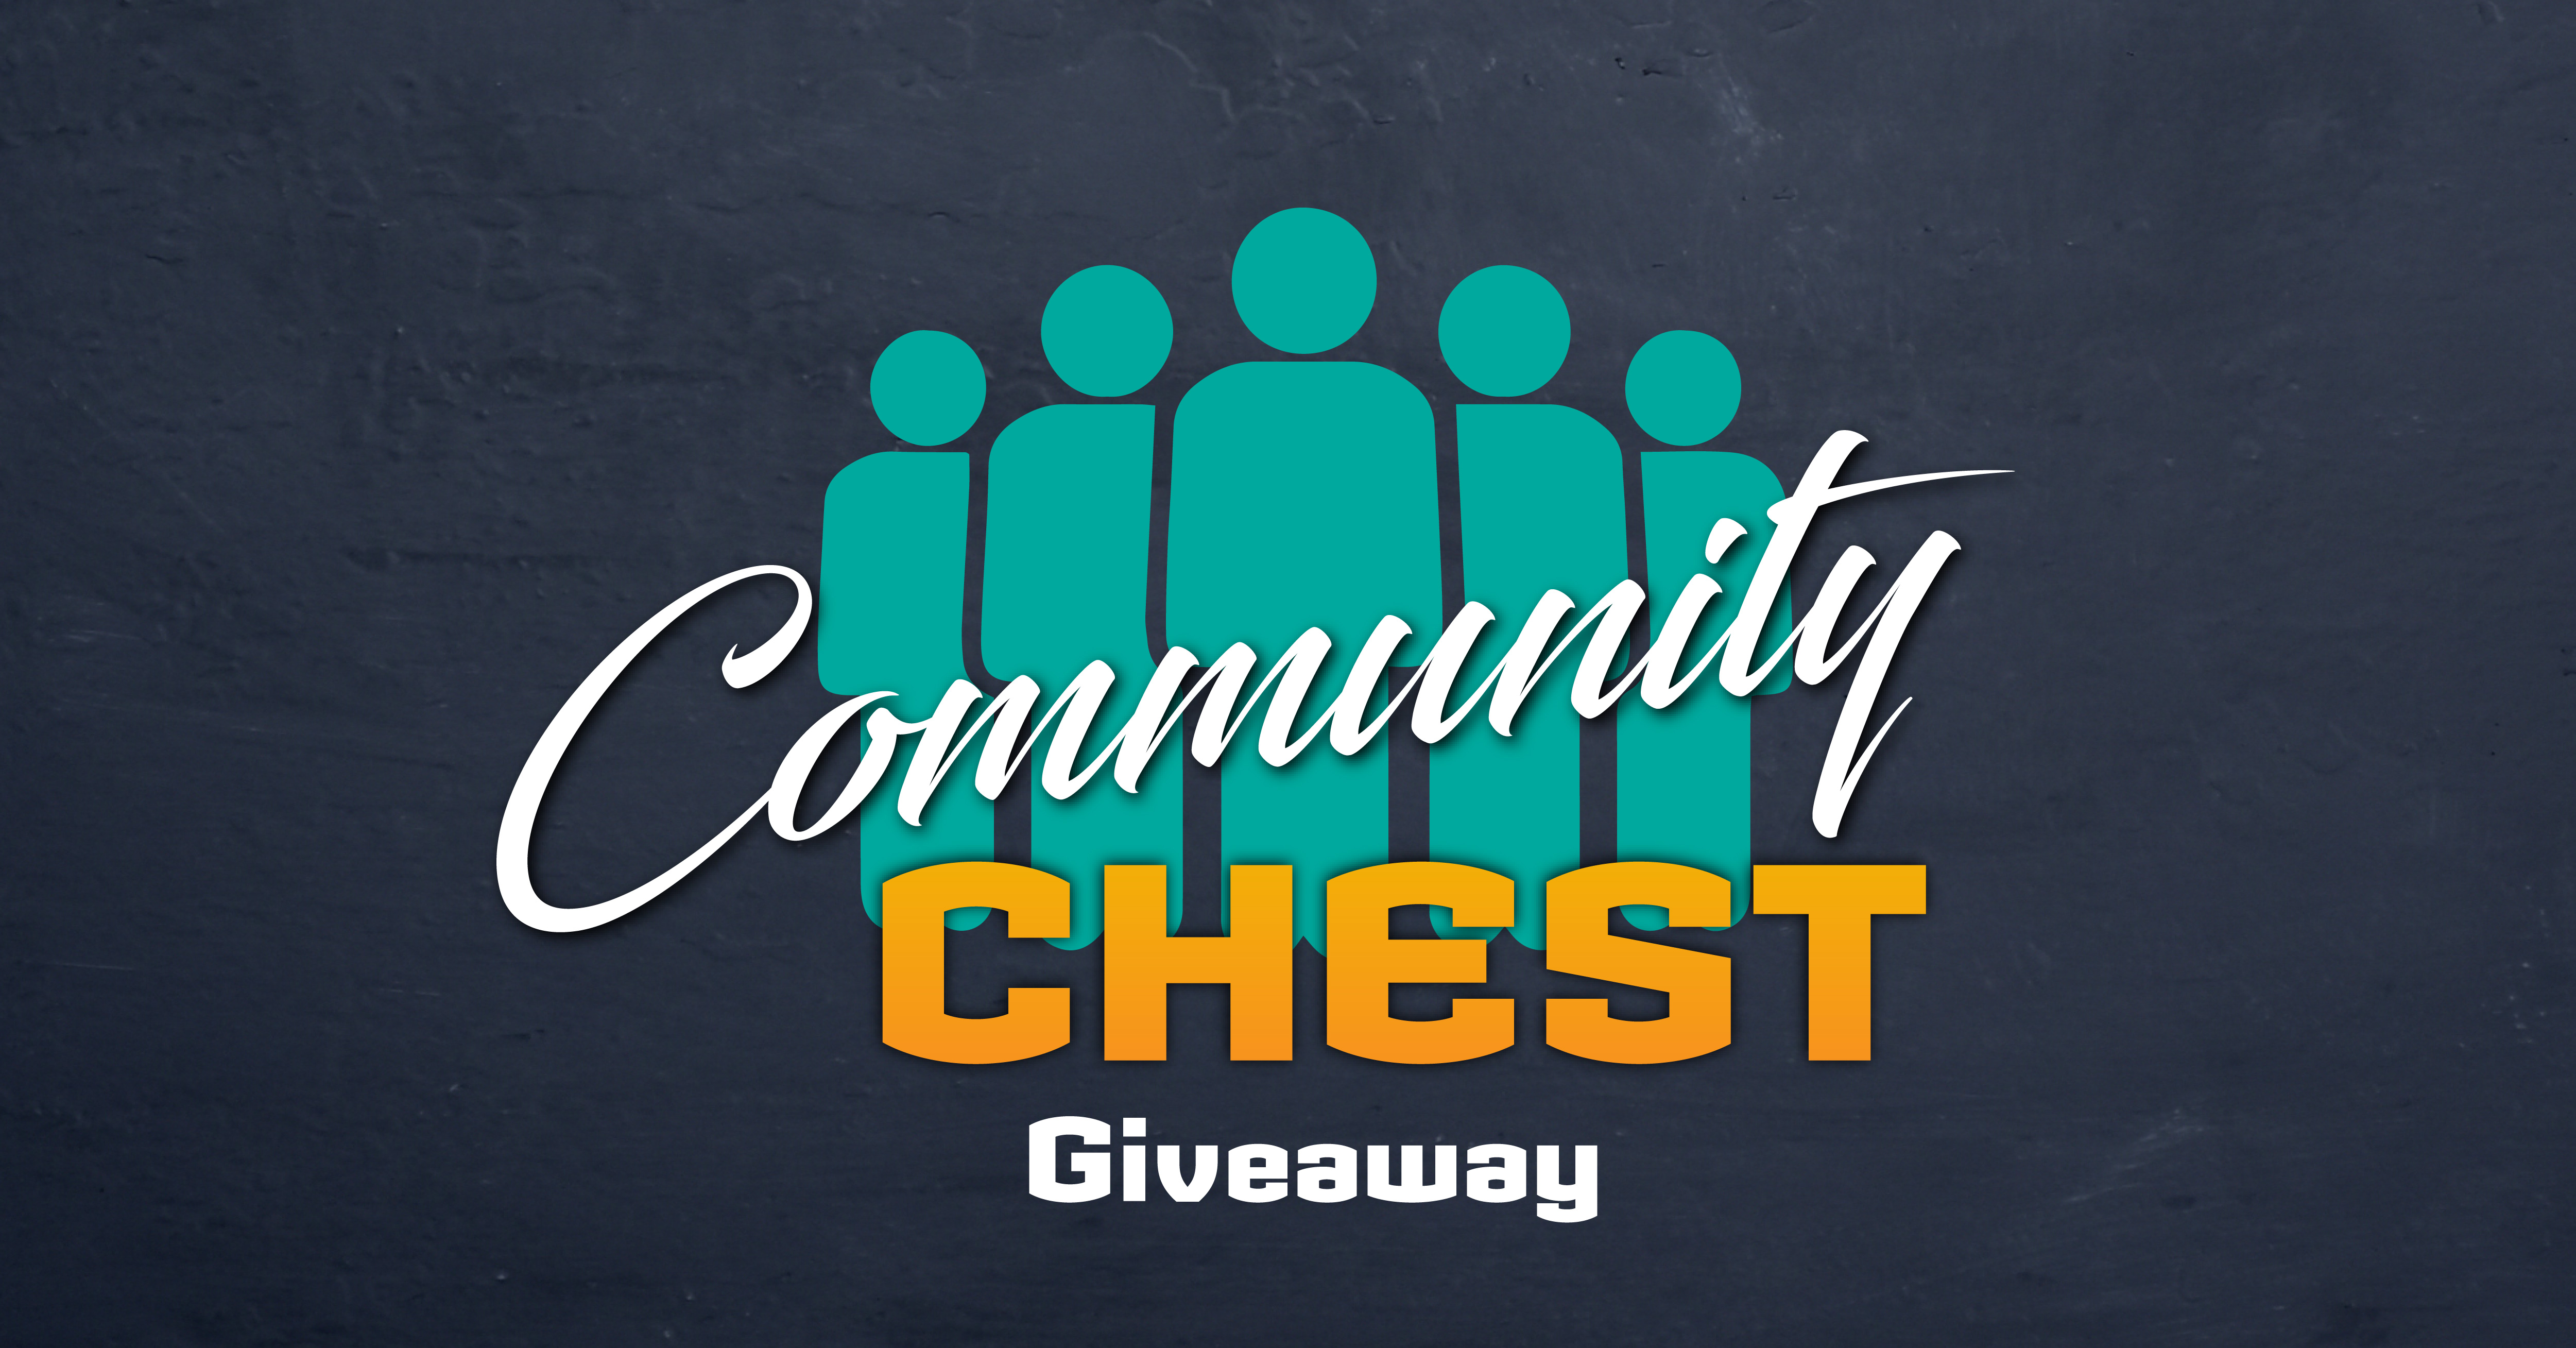 COMMUNITY CHEST GIVEAWAY